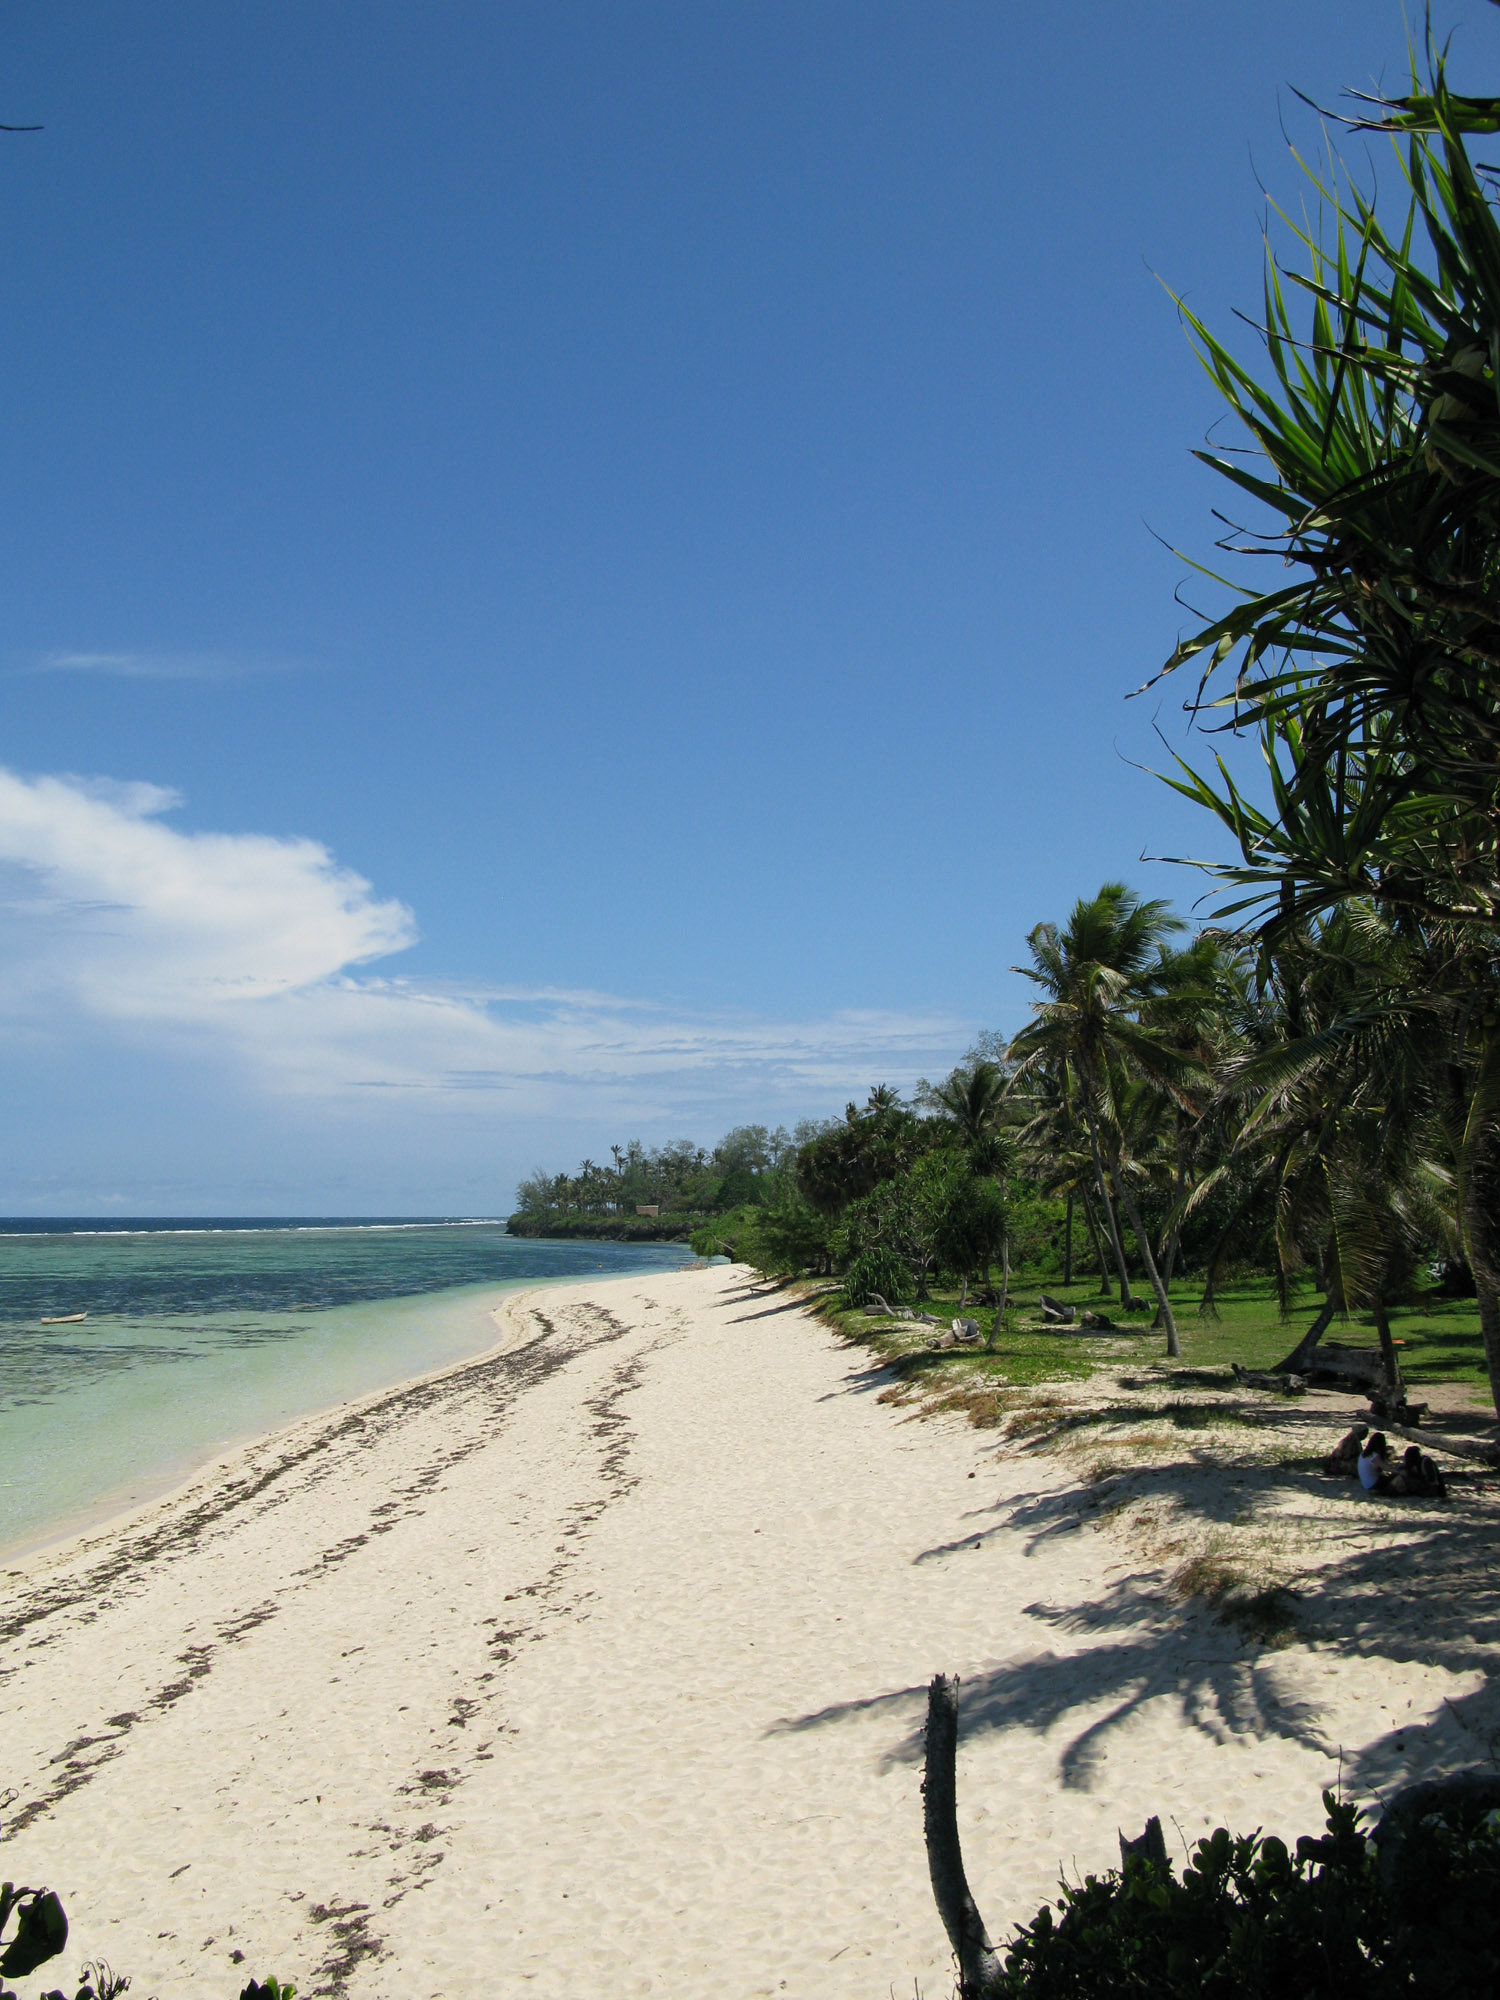 The Beach from the Sand Island